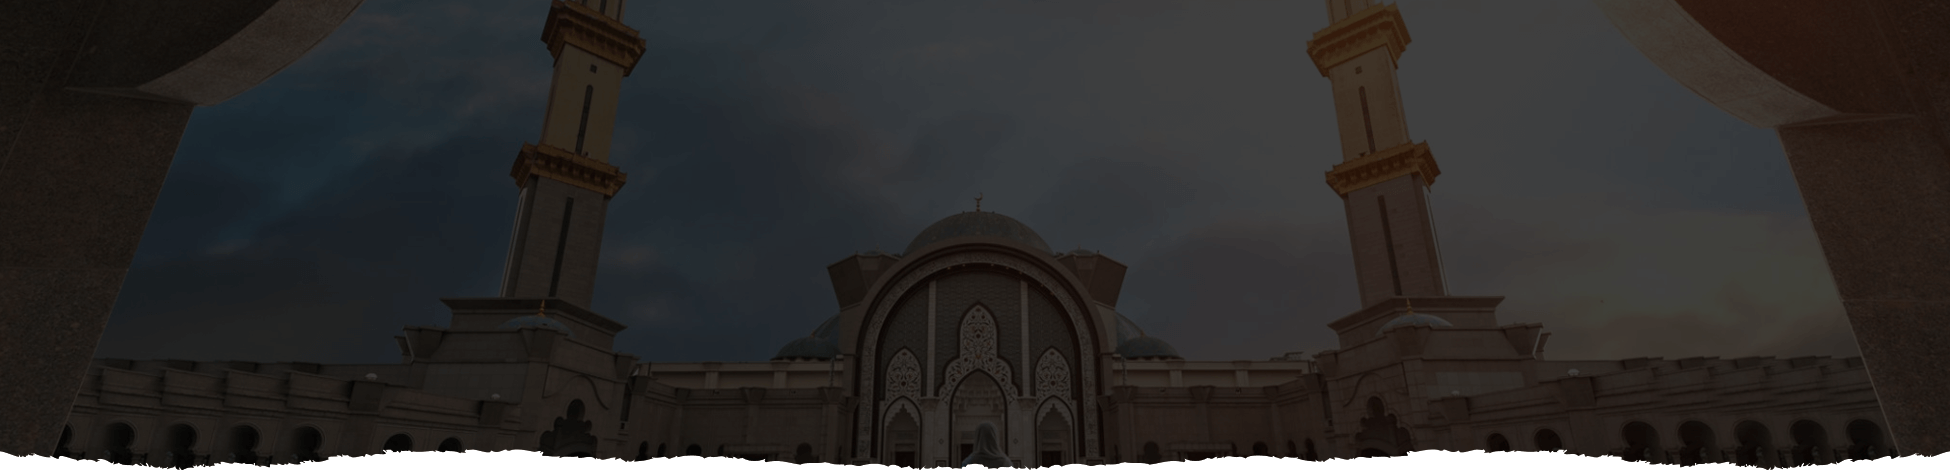 https://halalhomes.ngo/wp-content/uploads/2019/10/services-head-1.png